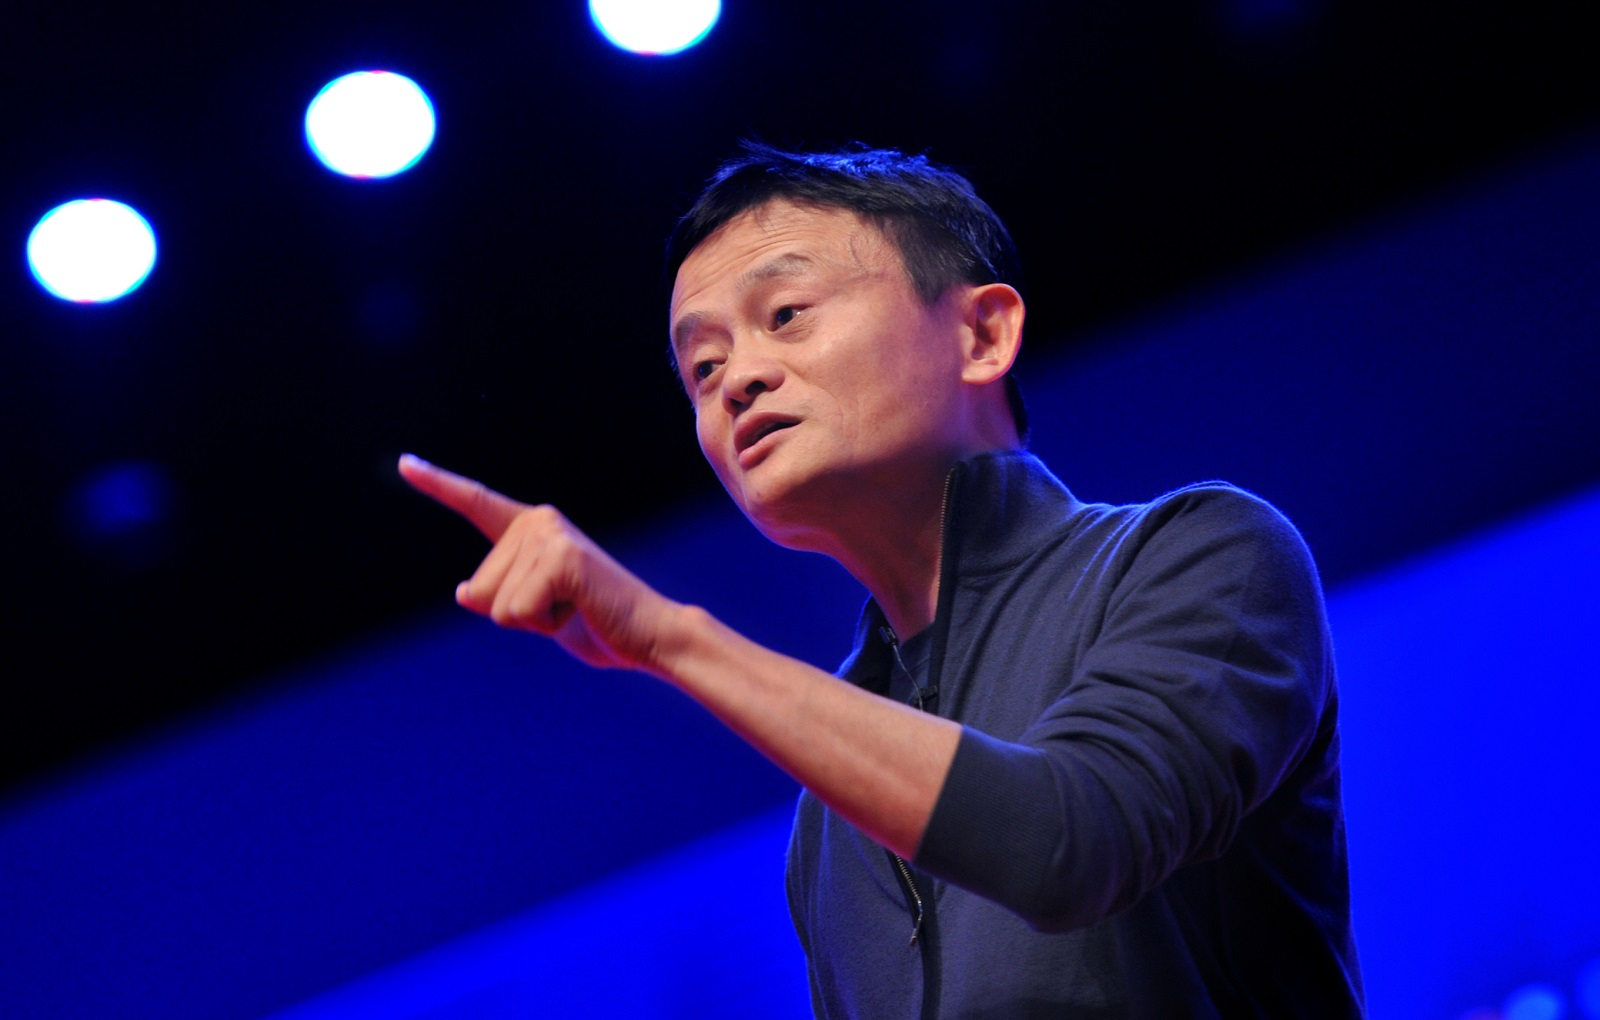 Jack Ma, Asia's wealthiest man, is contributing resources such as masks and testing kits to countries badly affected by COVID-19. - www.revolution.watch